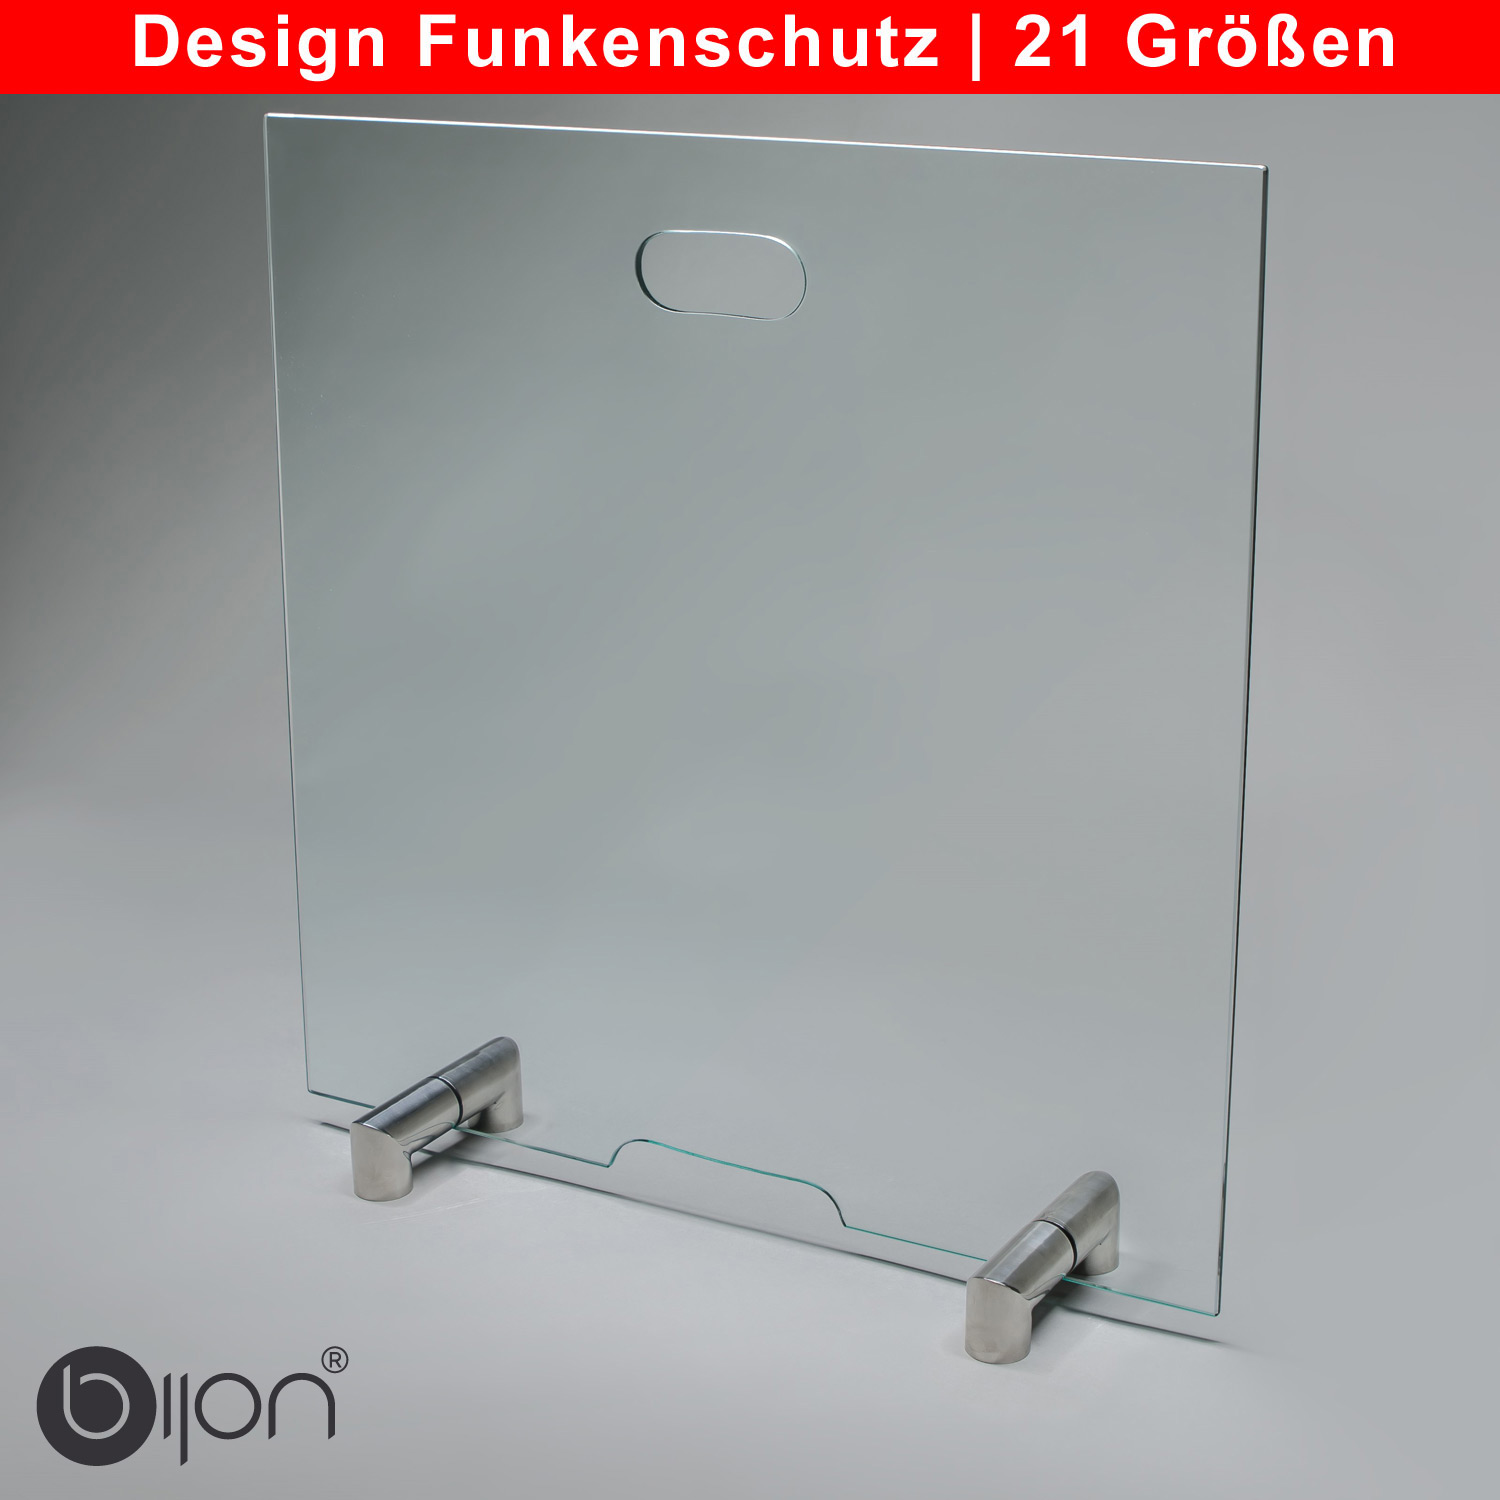 Kamin Glasplatte Fünfeck Kaminglasplatten Mit 18mm Facette Optional Mit 3 Fach Dichtlippe